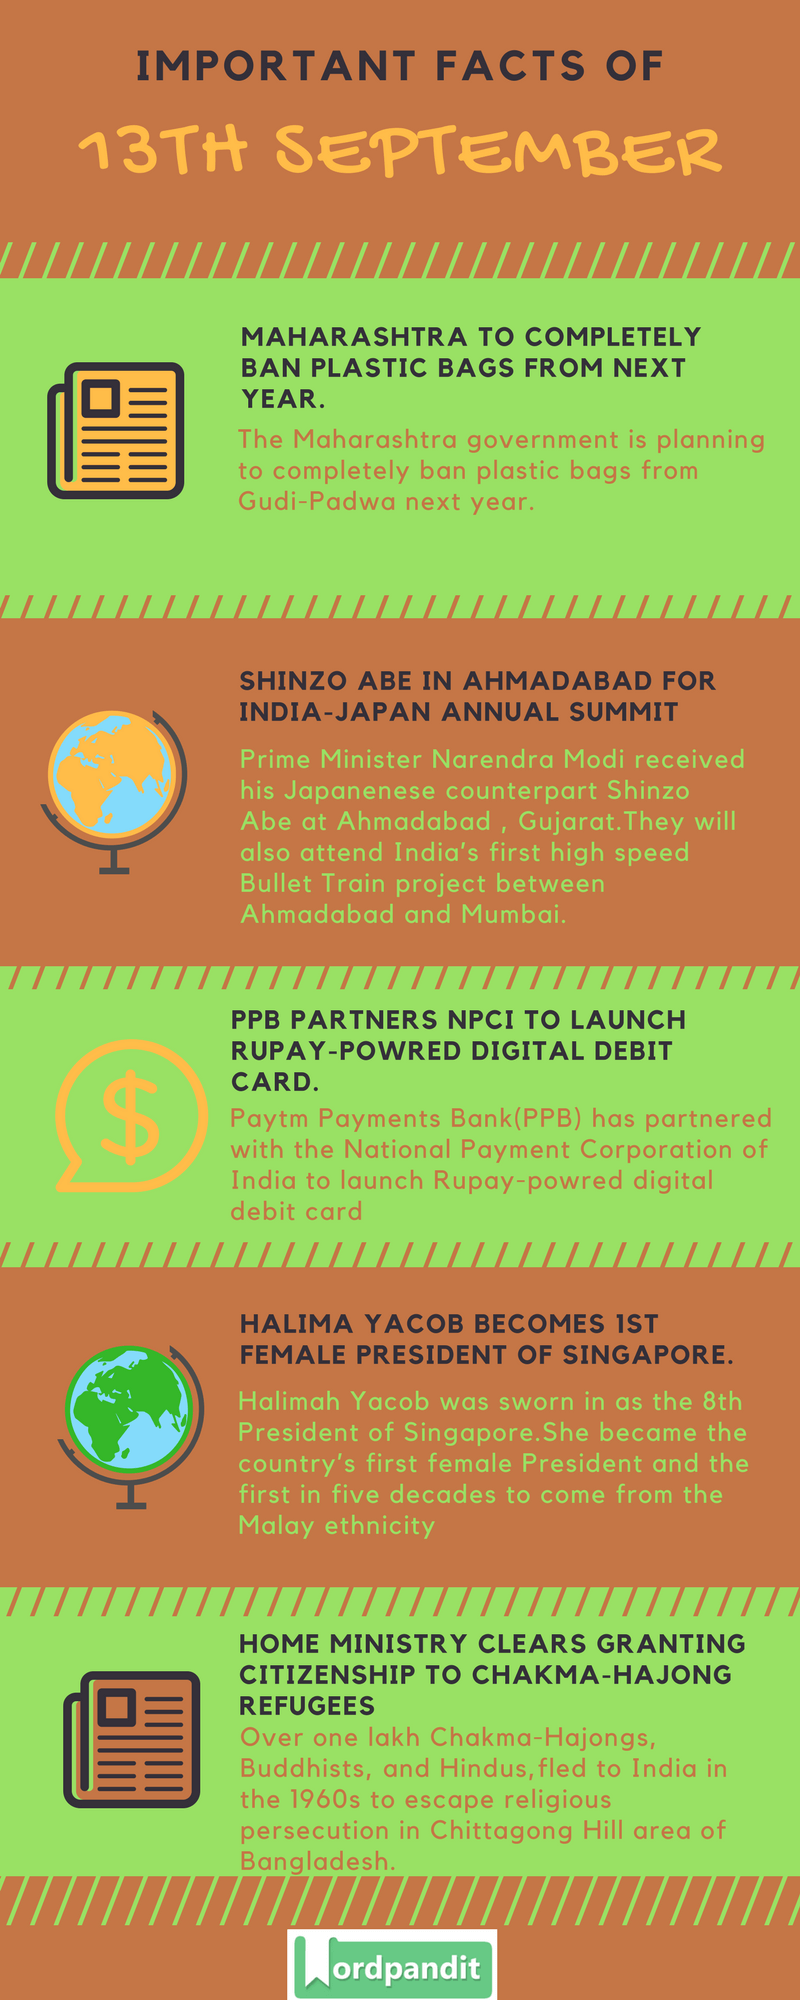 Daily-Current-Affairs-13-september-2017-Current-Affairs-Quiz-september-13-2017-Current-Affairs-Infographic